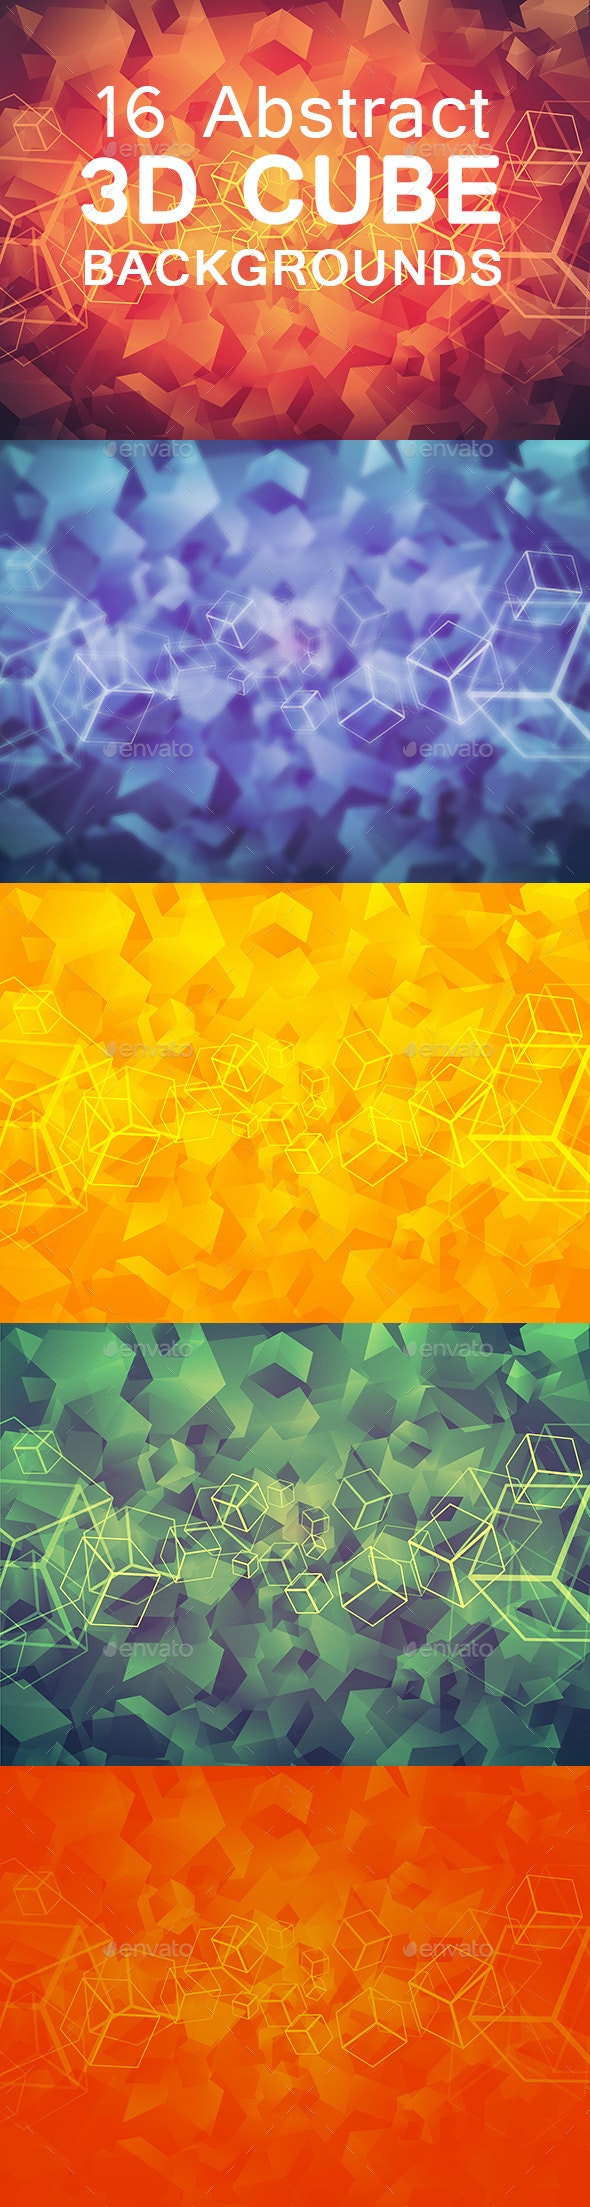 16 Abstract 3D Cube Backgrounds - Abstract Backgrounds